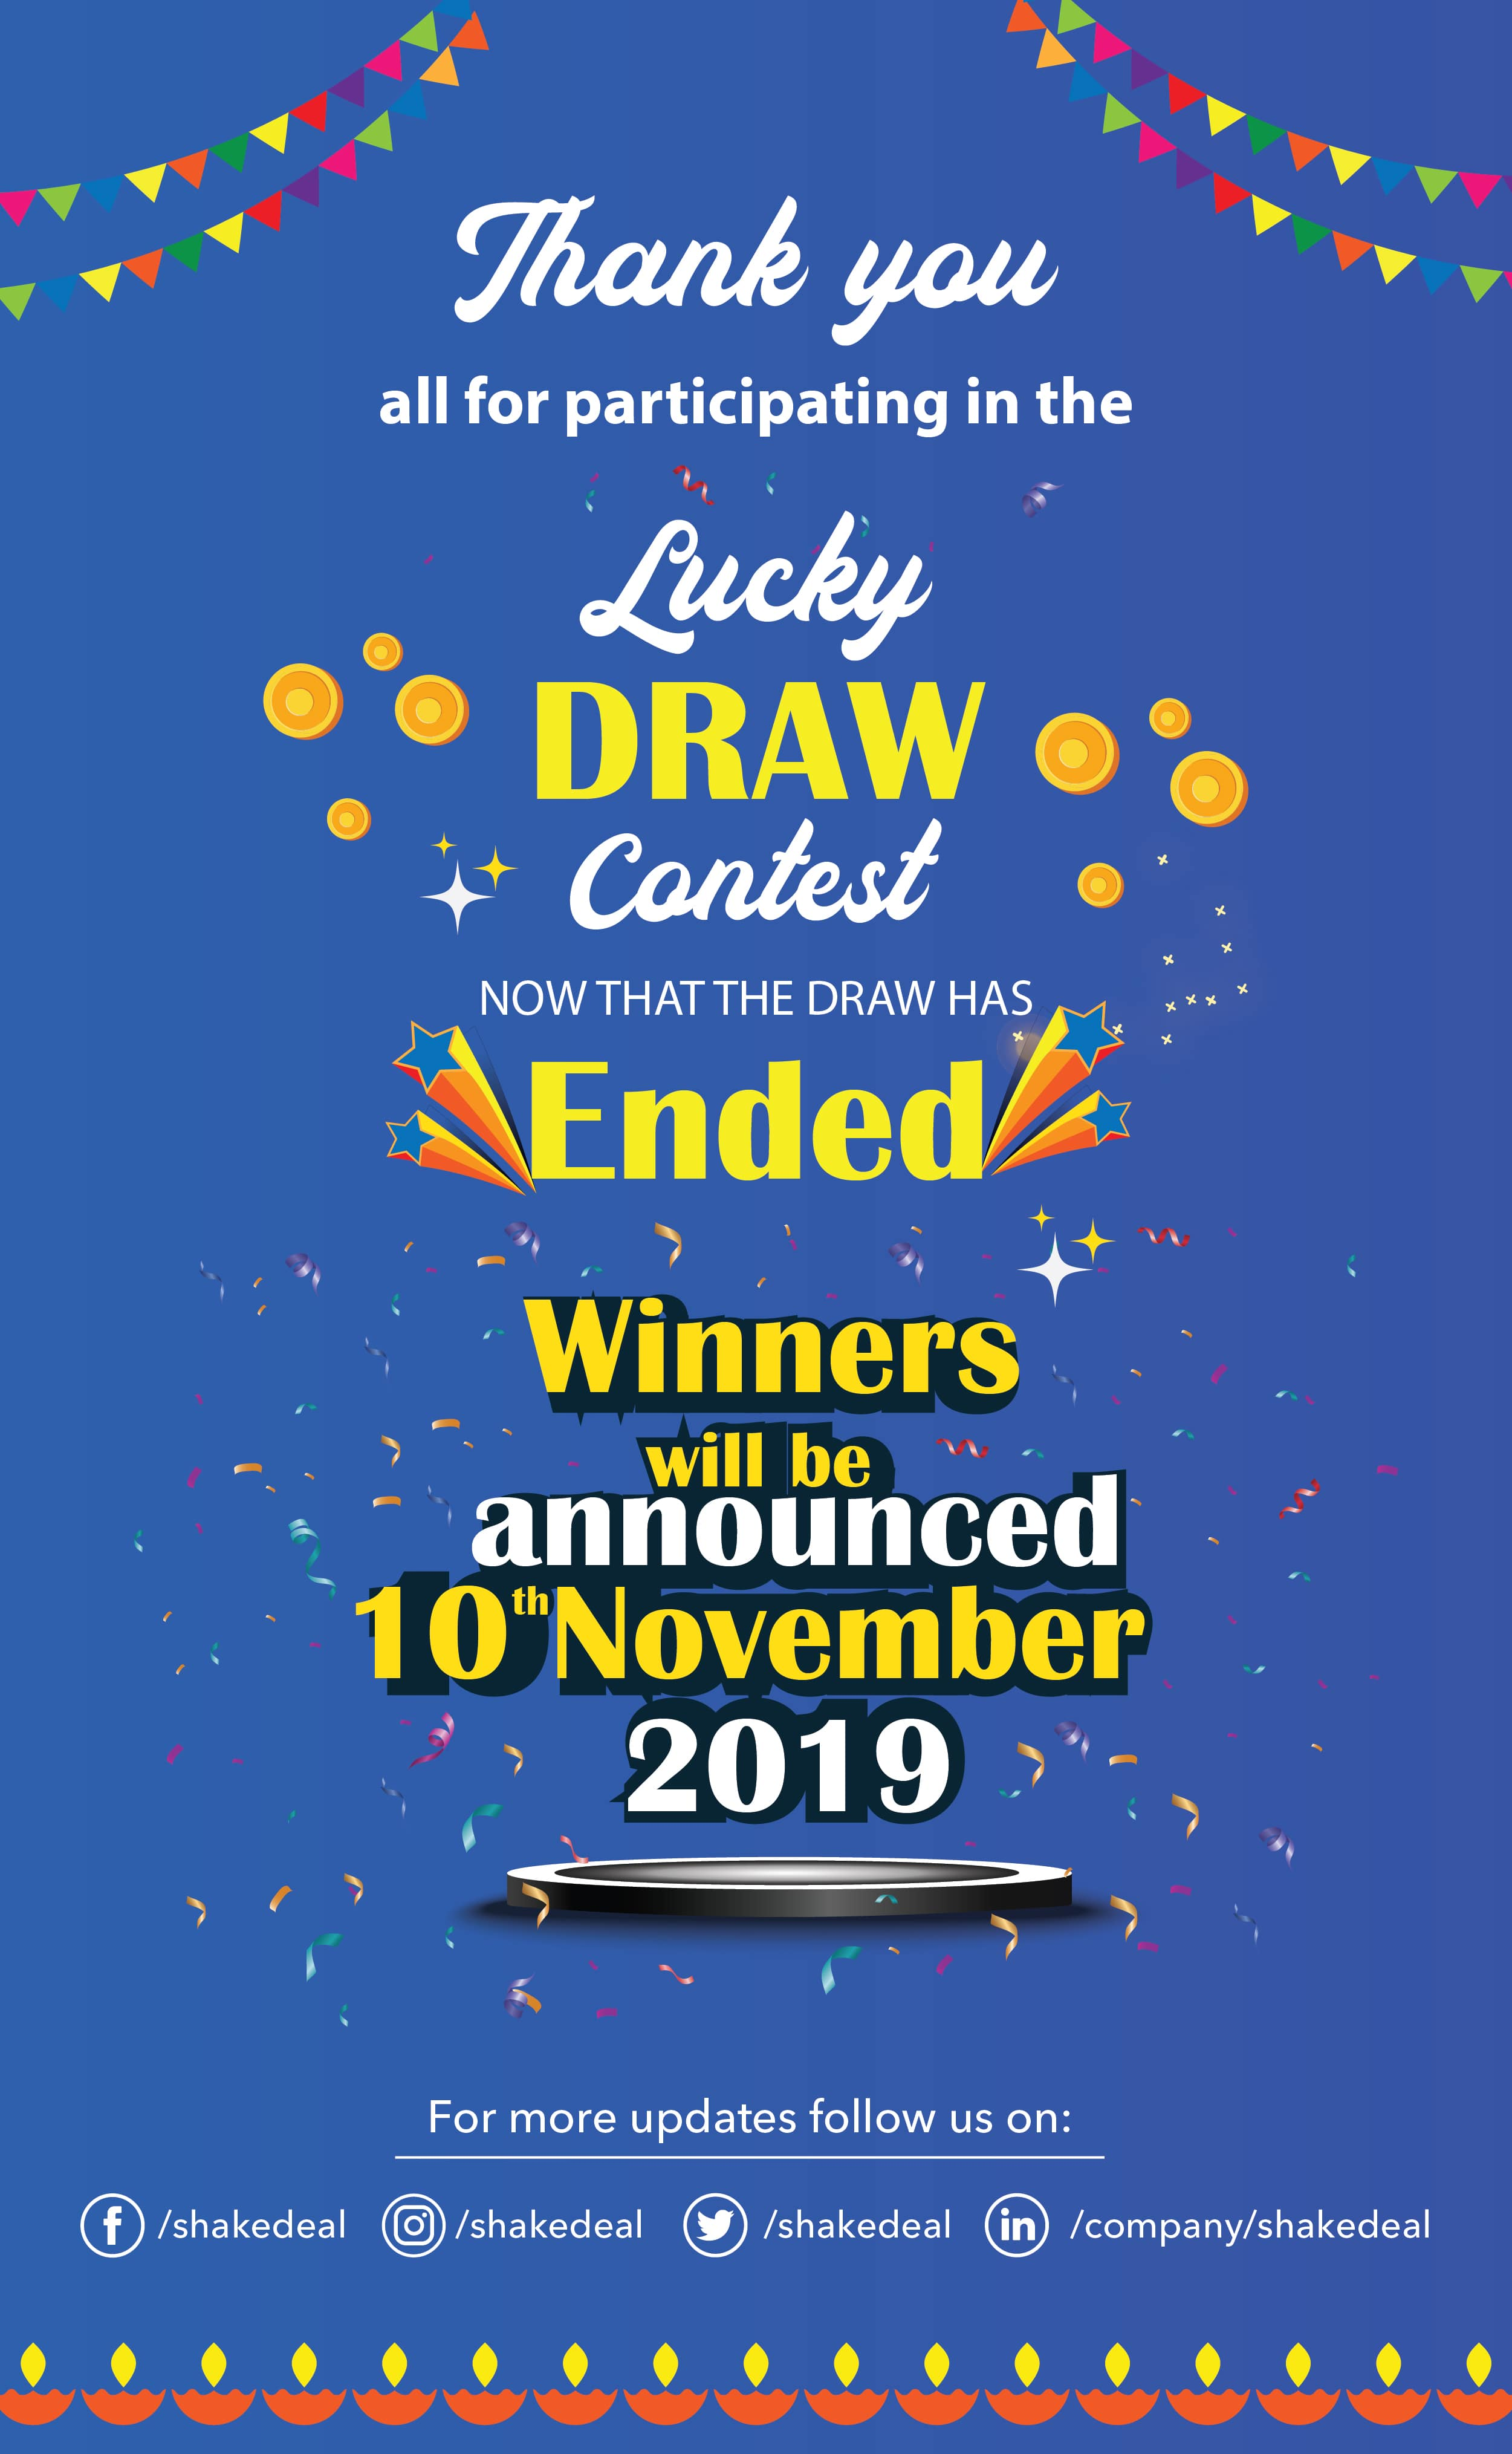 Shop on shakedeal this diwali and stand a chance to win Gold